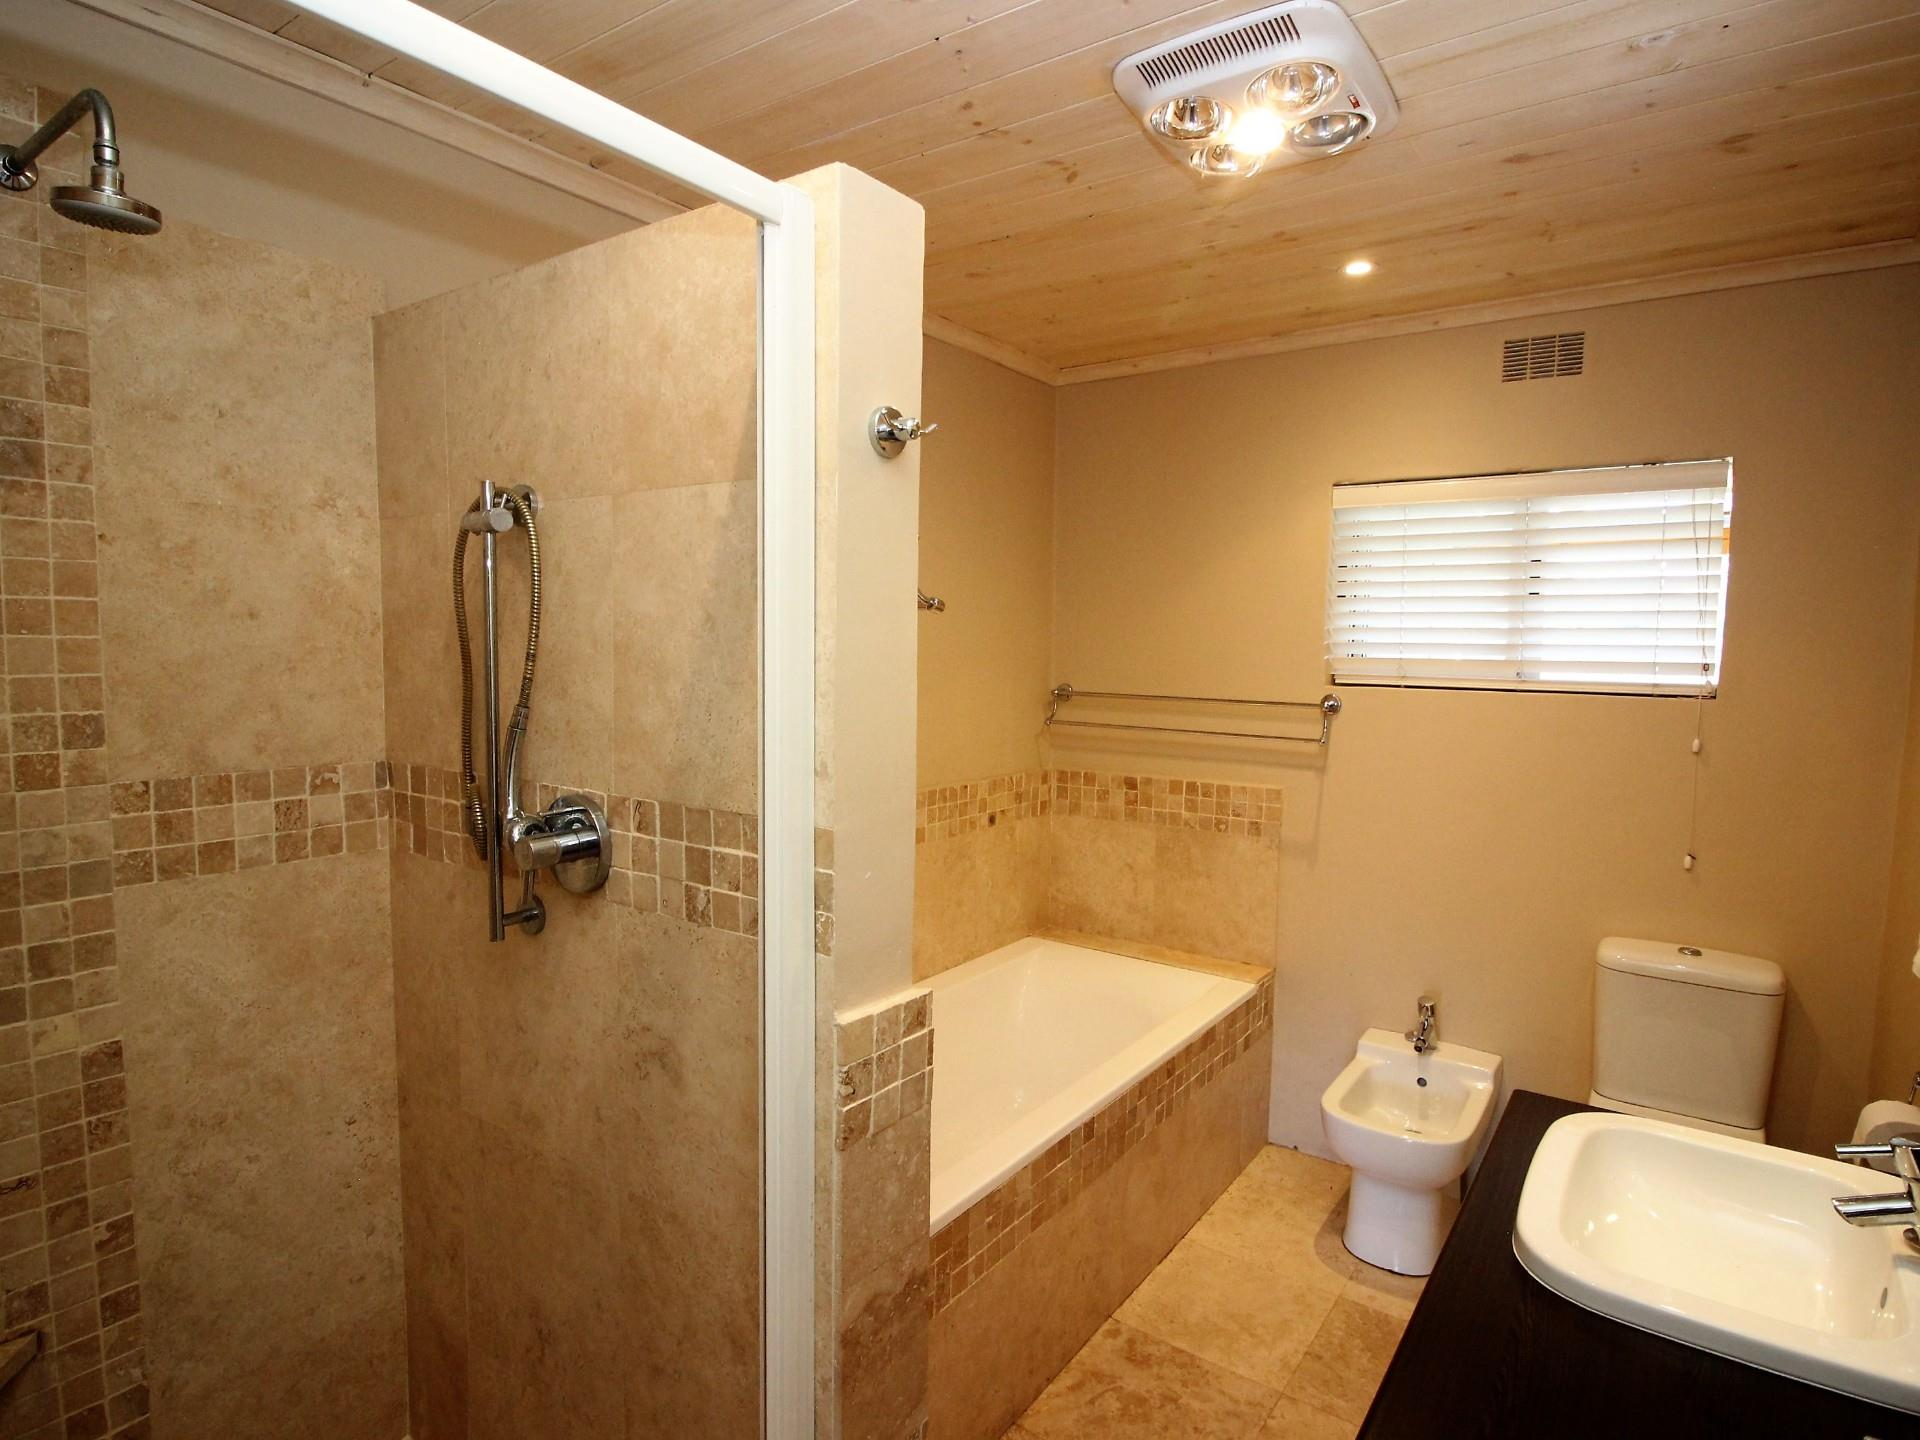 4 Bedroom House For Sale in Kingfisher Creek